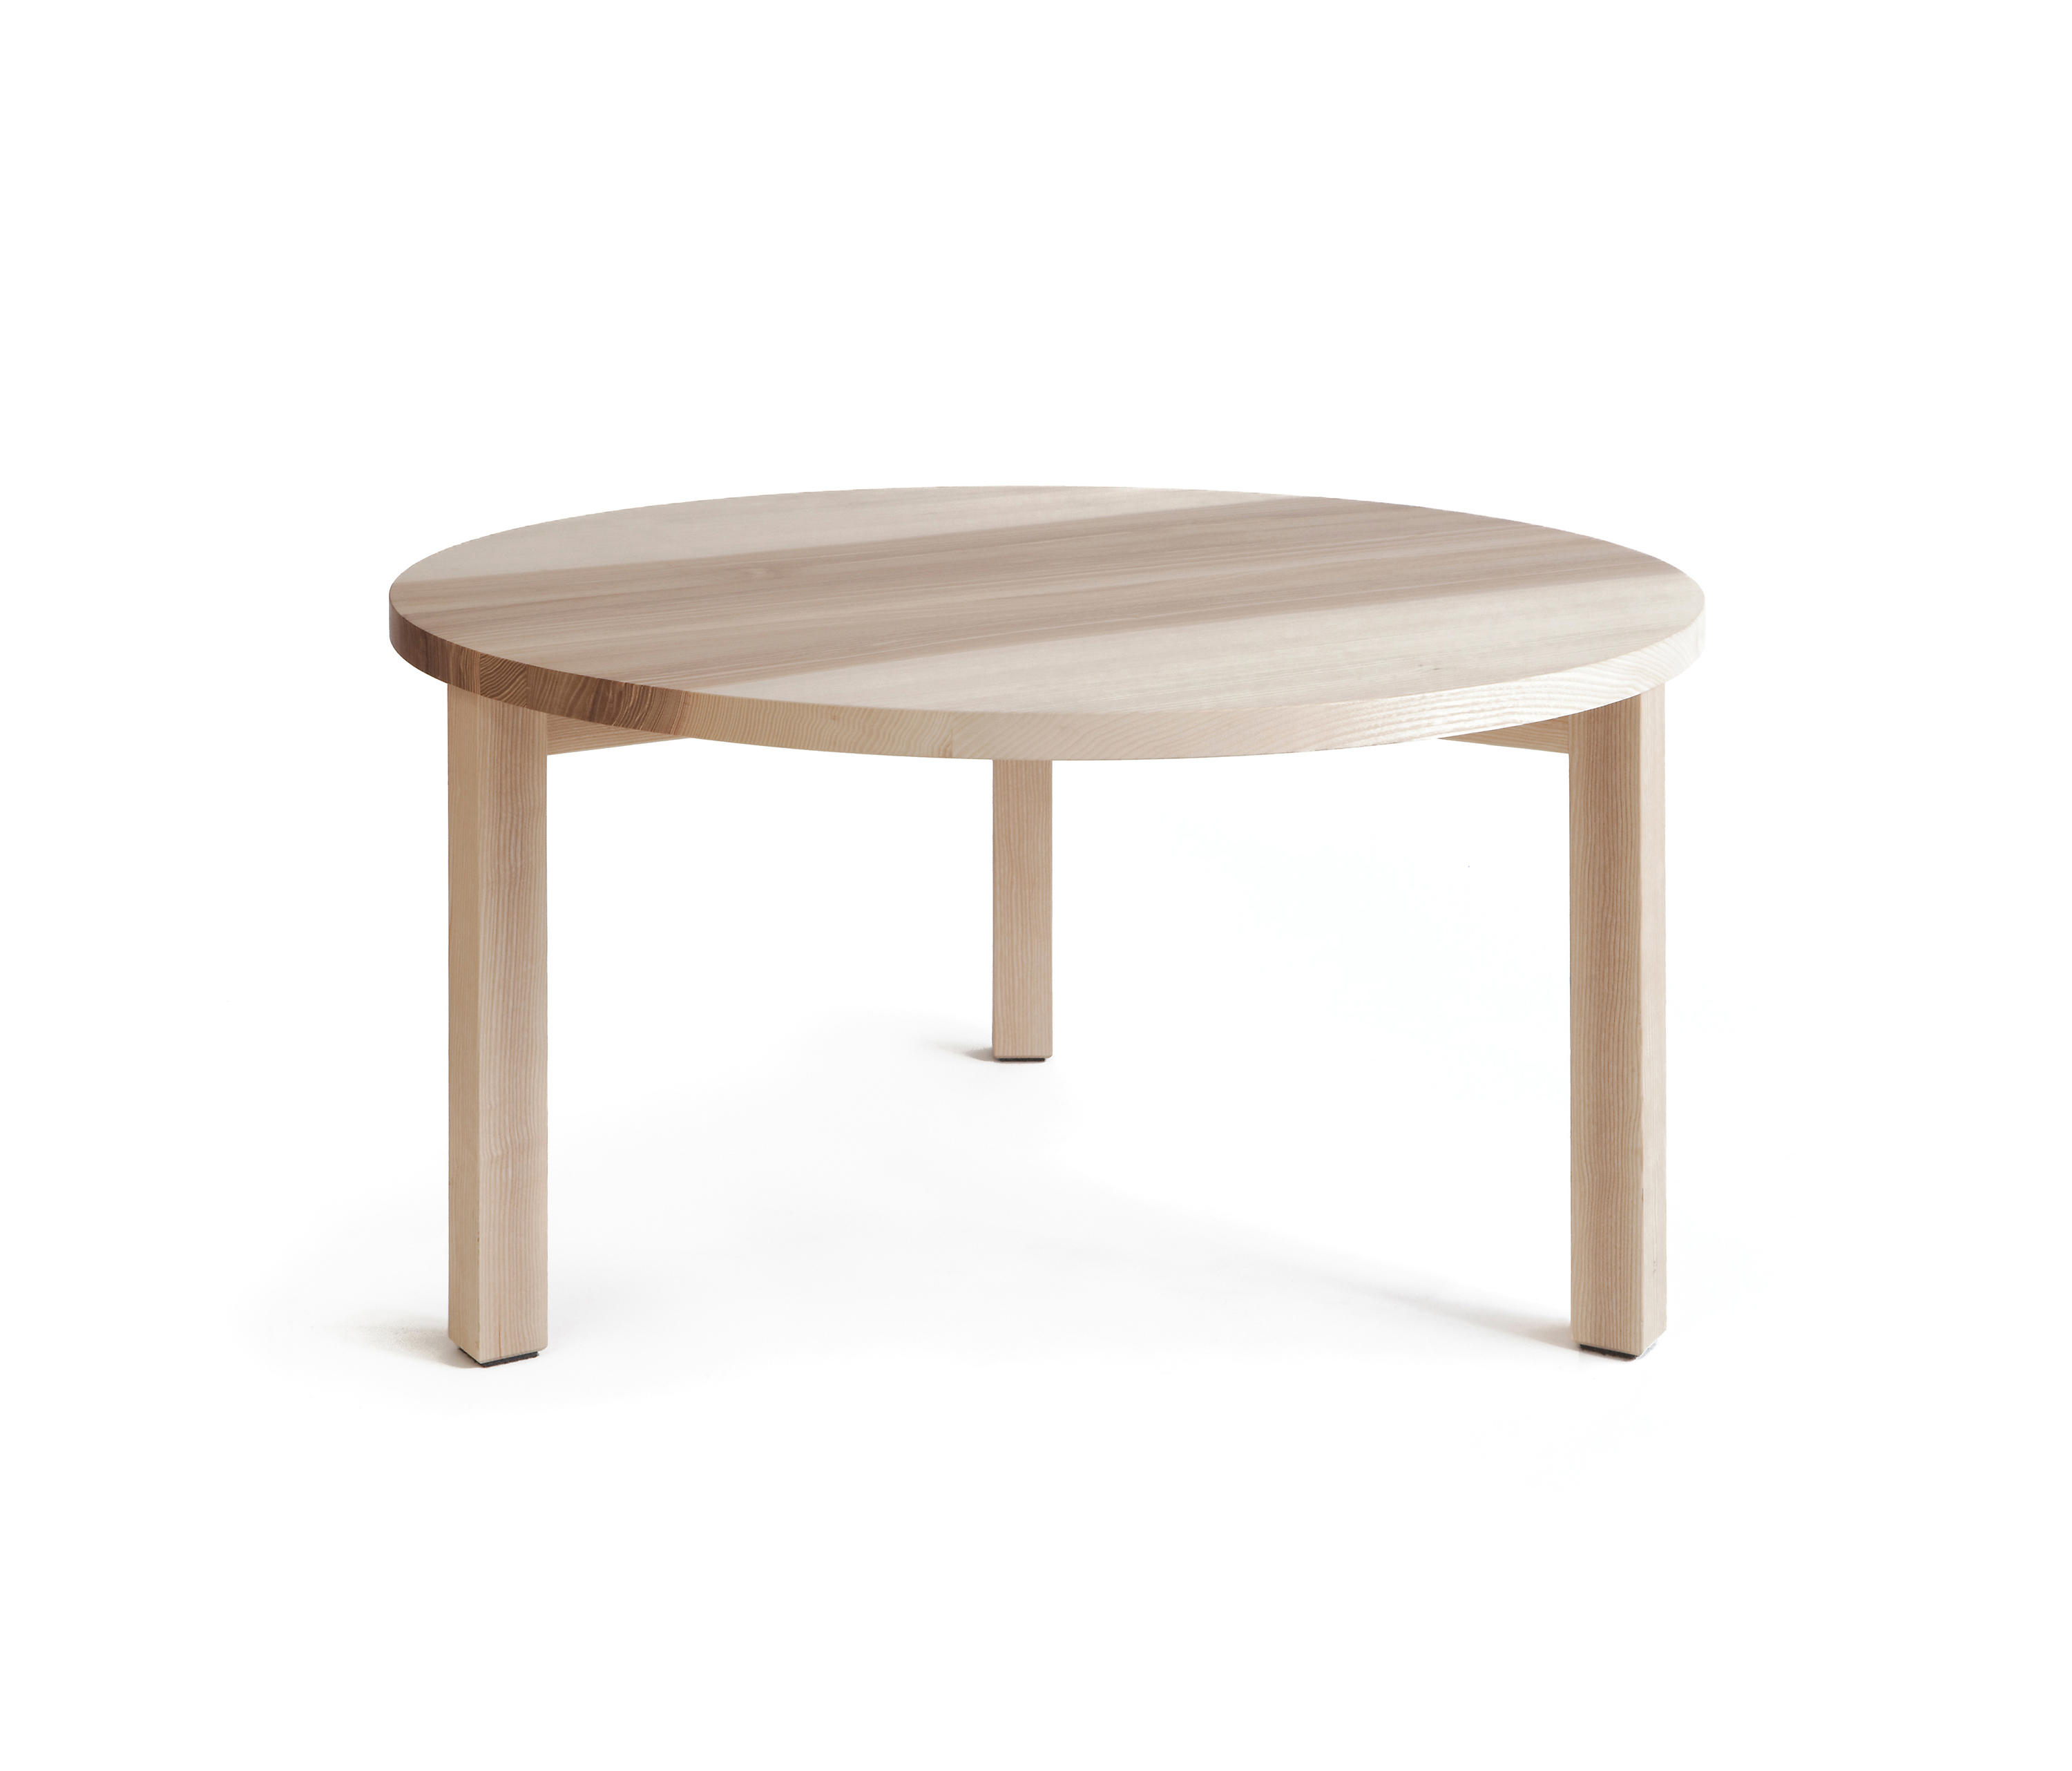 Nice Periferia KVP6C 8C Round Coffee Table By Nikari | Lounge Tables